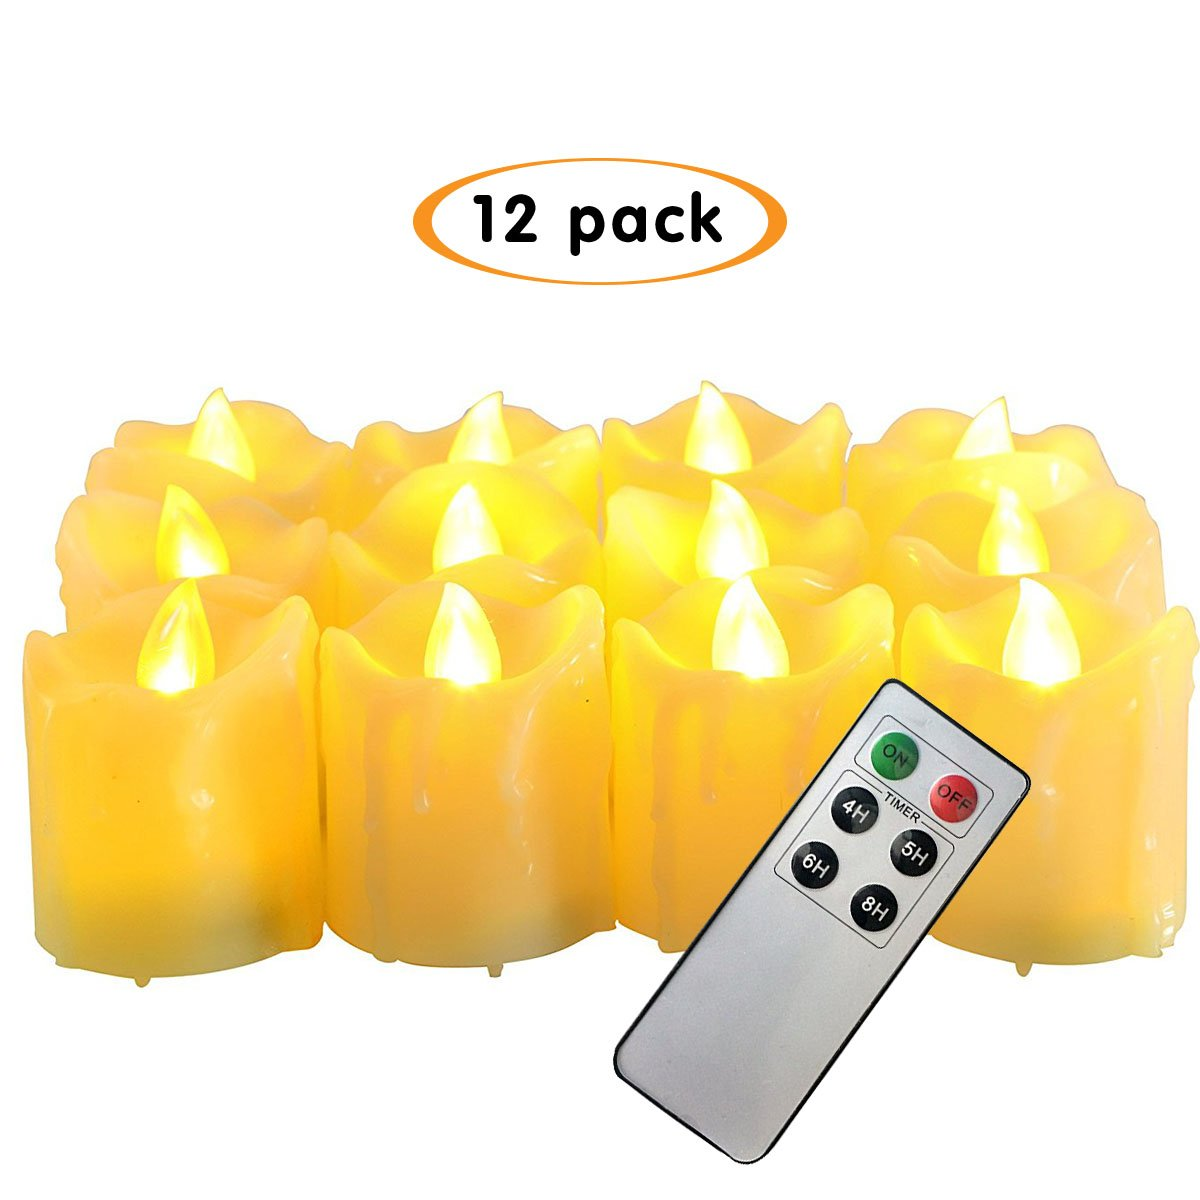 CANDLE CHOICE Battery-Operated Remote Control Candles and Timer,1.5''x2'' LED Votives Realistic Flickering Flameless Candles with Drips(12 Pack)